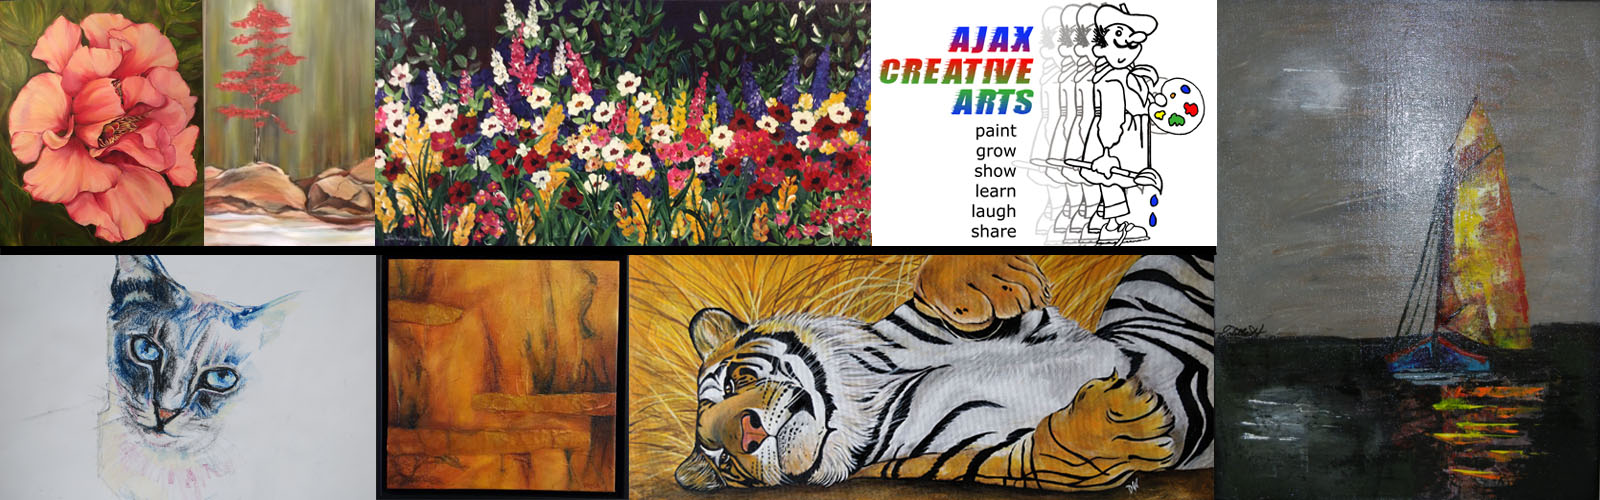 Ajax Creative Arts Banner